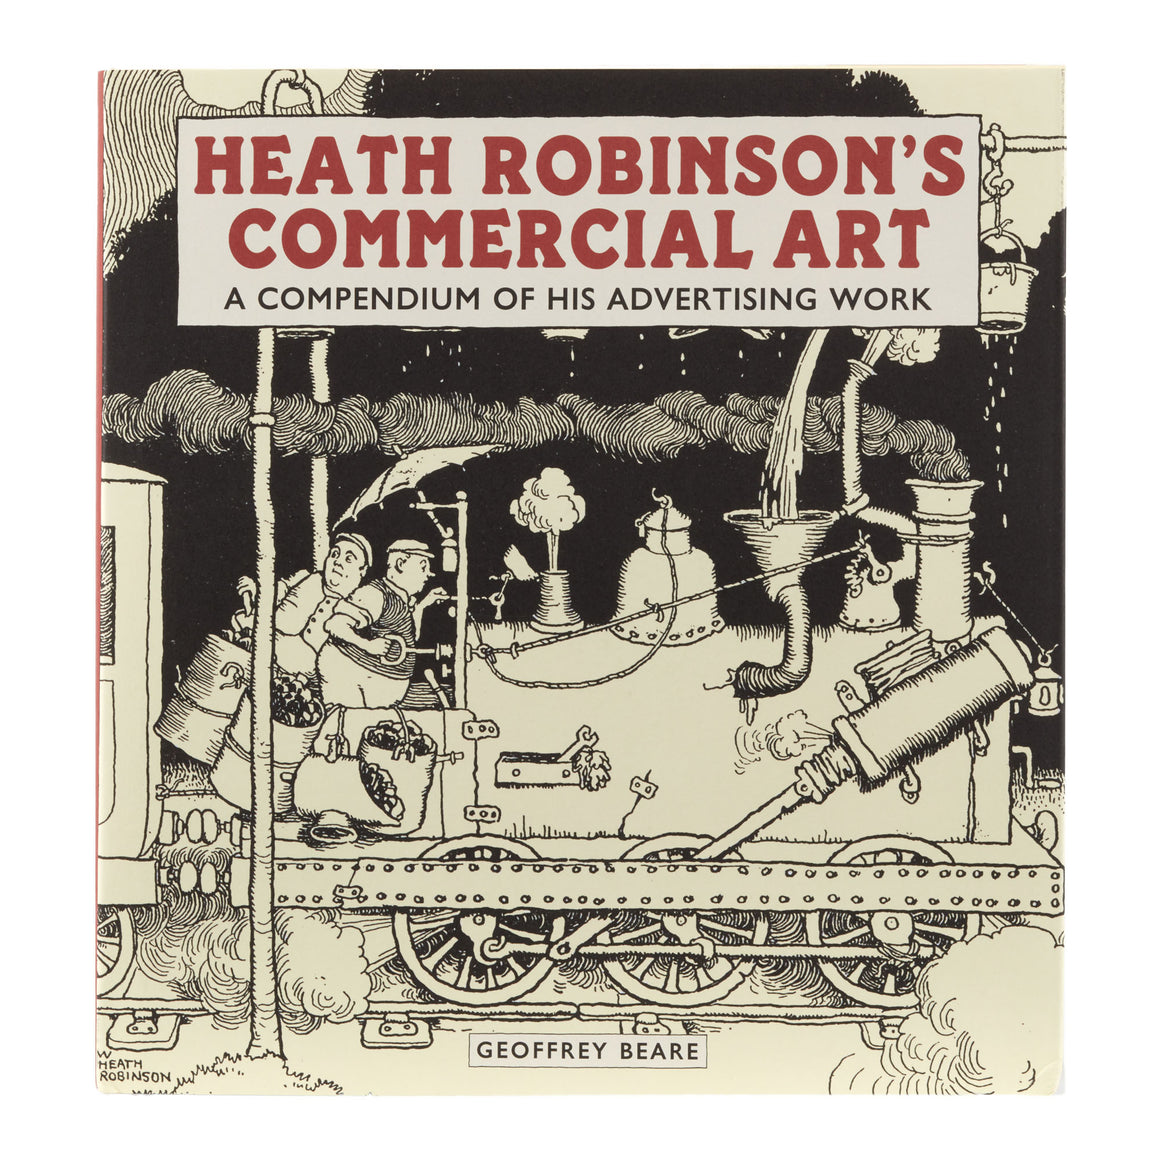 Heath Robinson's Commercial Art